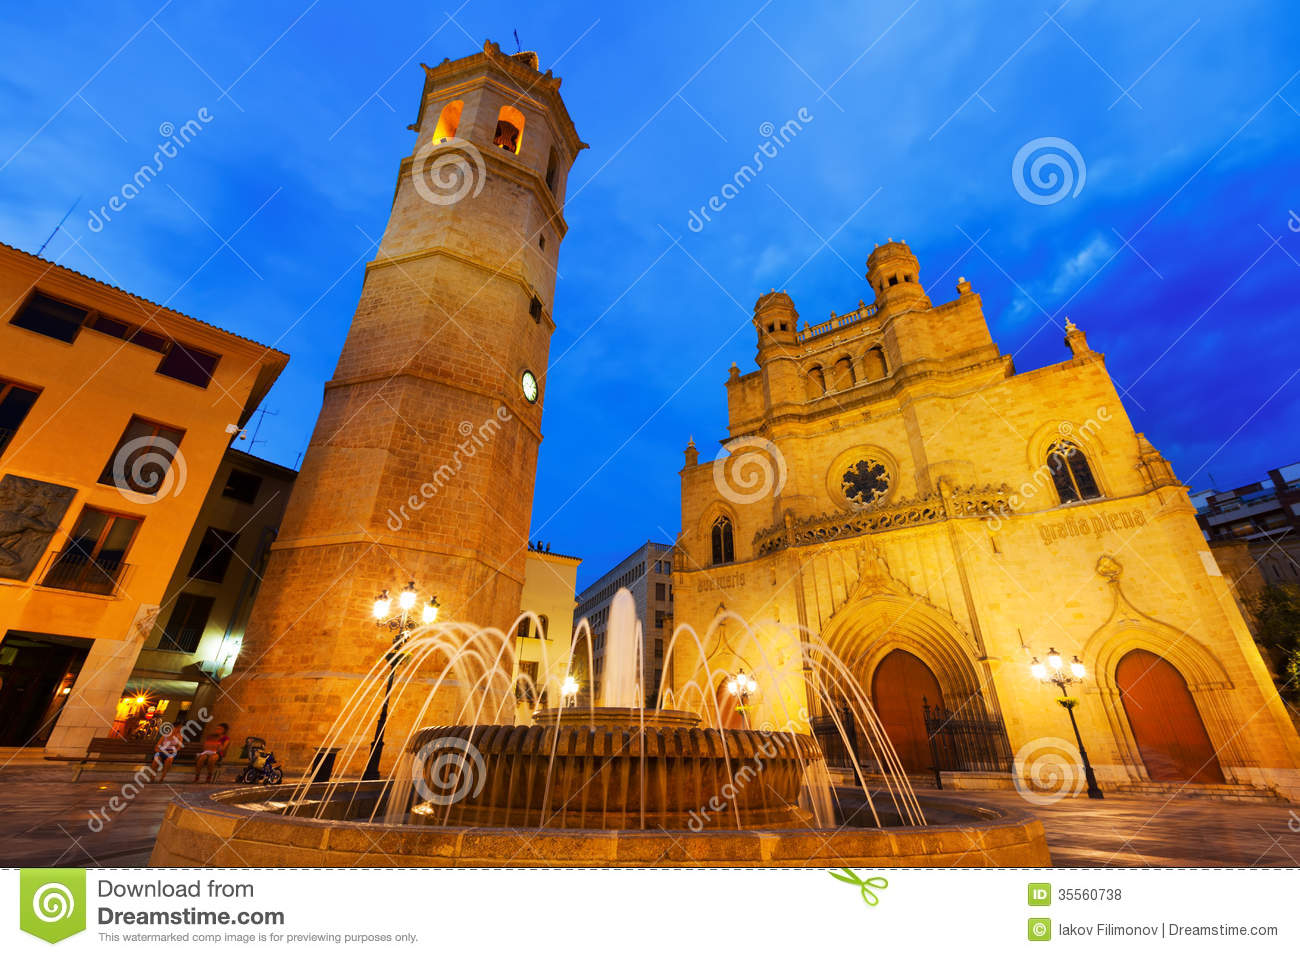 Castellon de la Plana Spain  city photos gallery : Cathedral At Castellon De La Plana In Night. Spain Royalty Free Stock ...